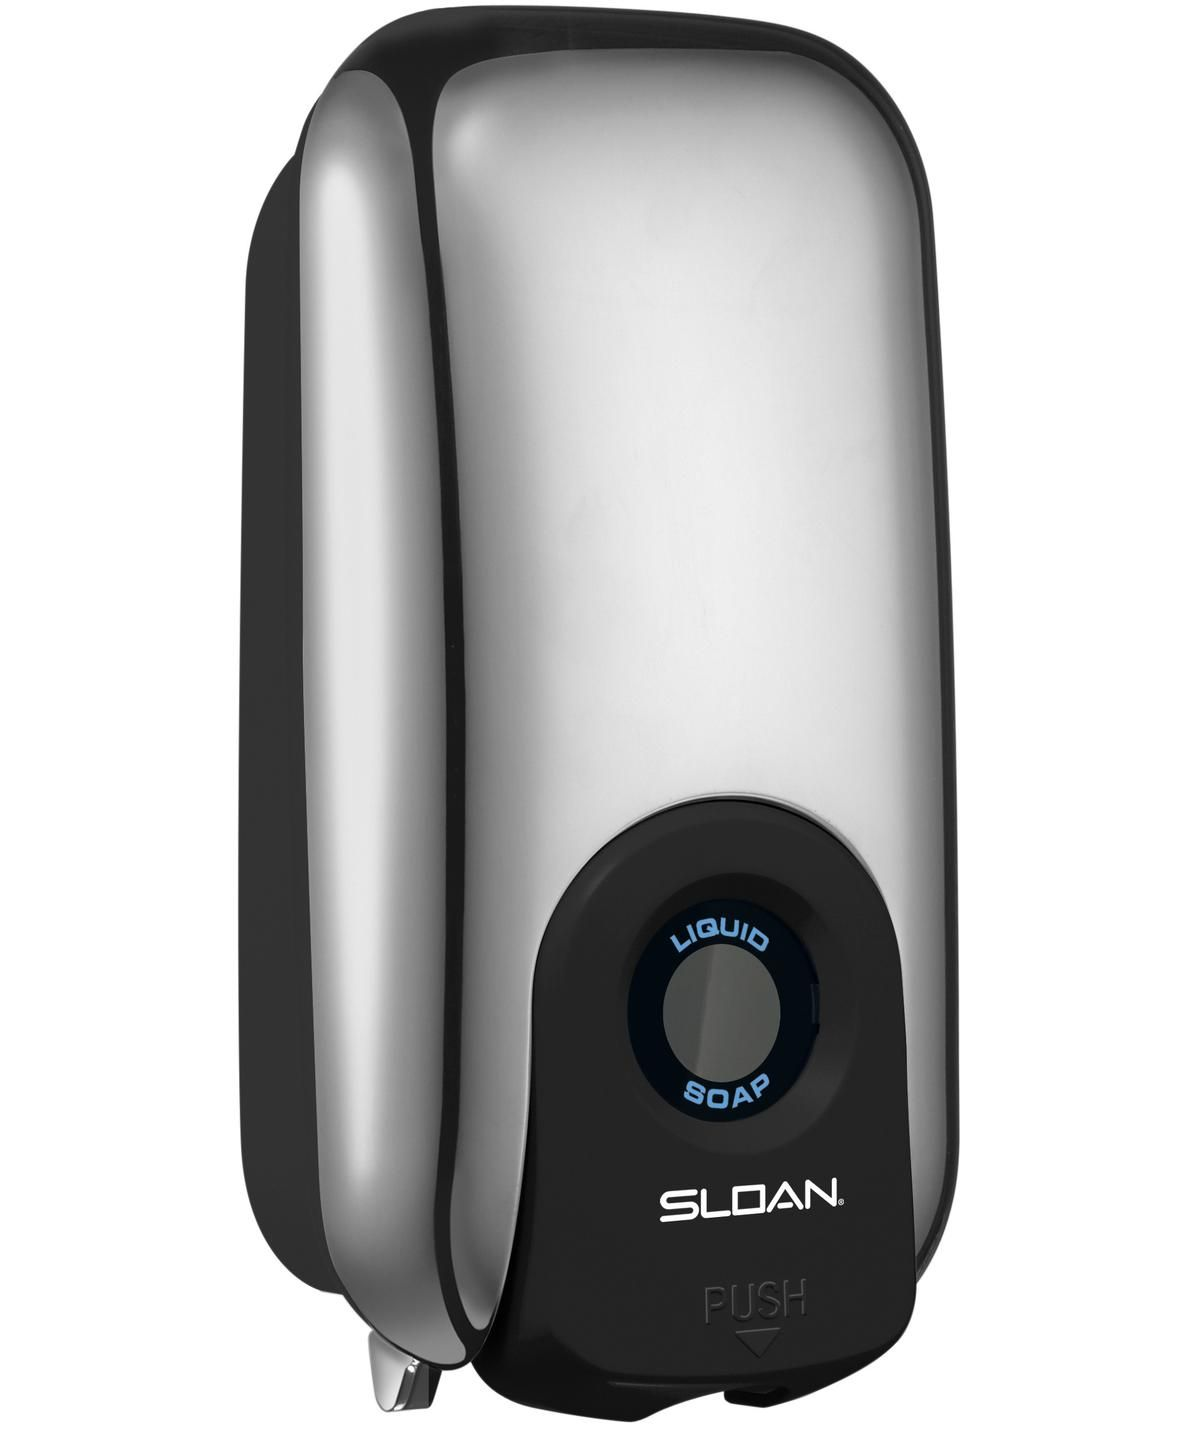 Automatic Soap Dispensers And Hand Dryers Sloan Foam Soap